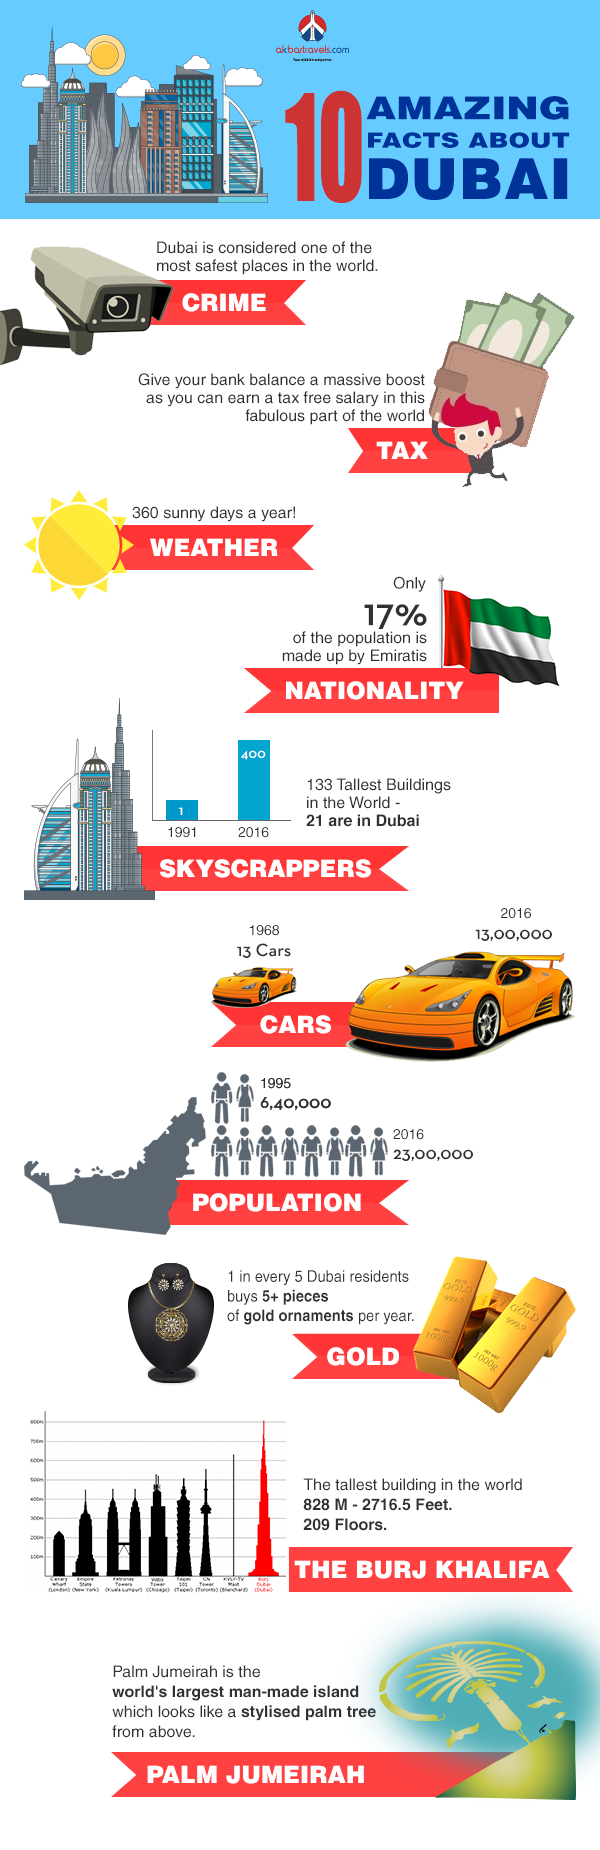 10 Amazing Facts About Dubai